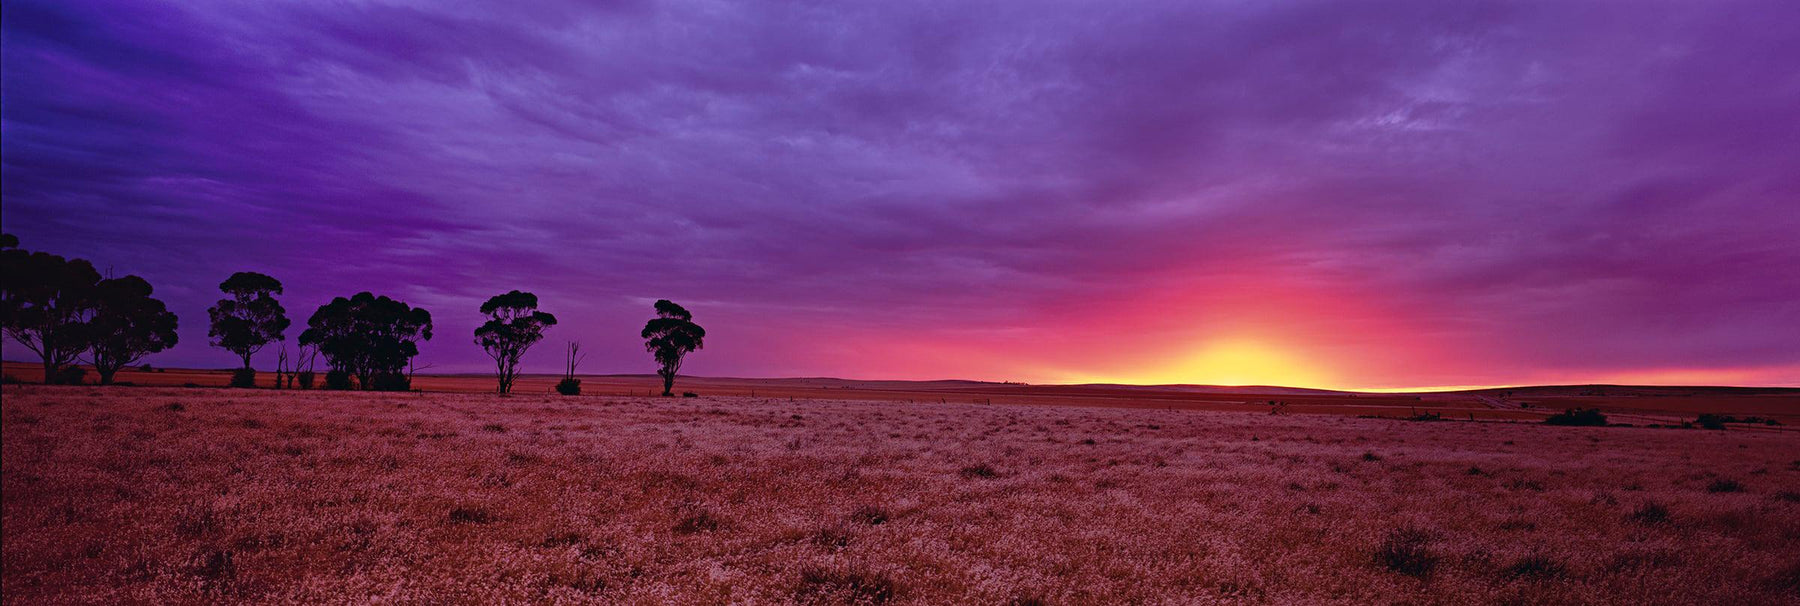 Tree and brush filled prairie of Burra Australia being lit up by the sun as it pierces the horizon